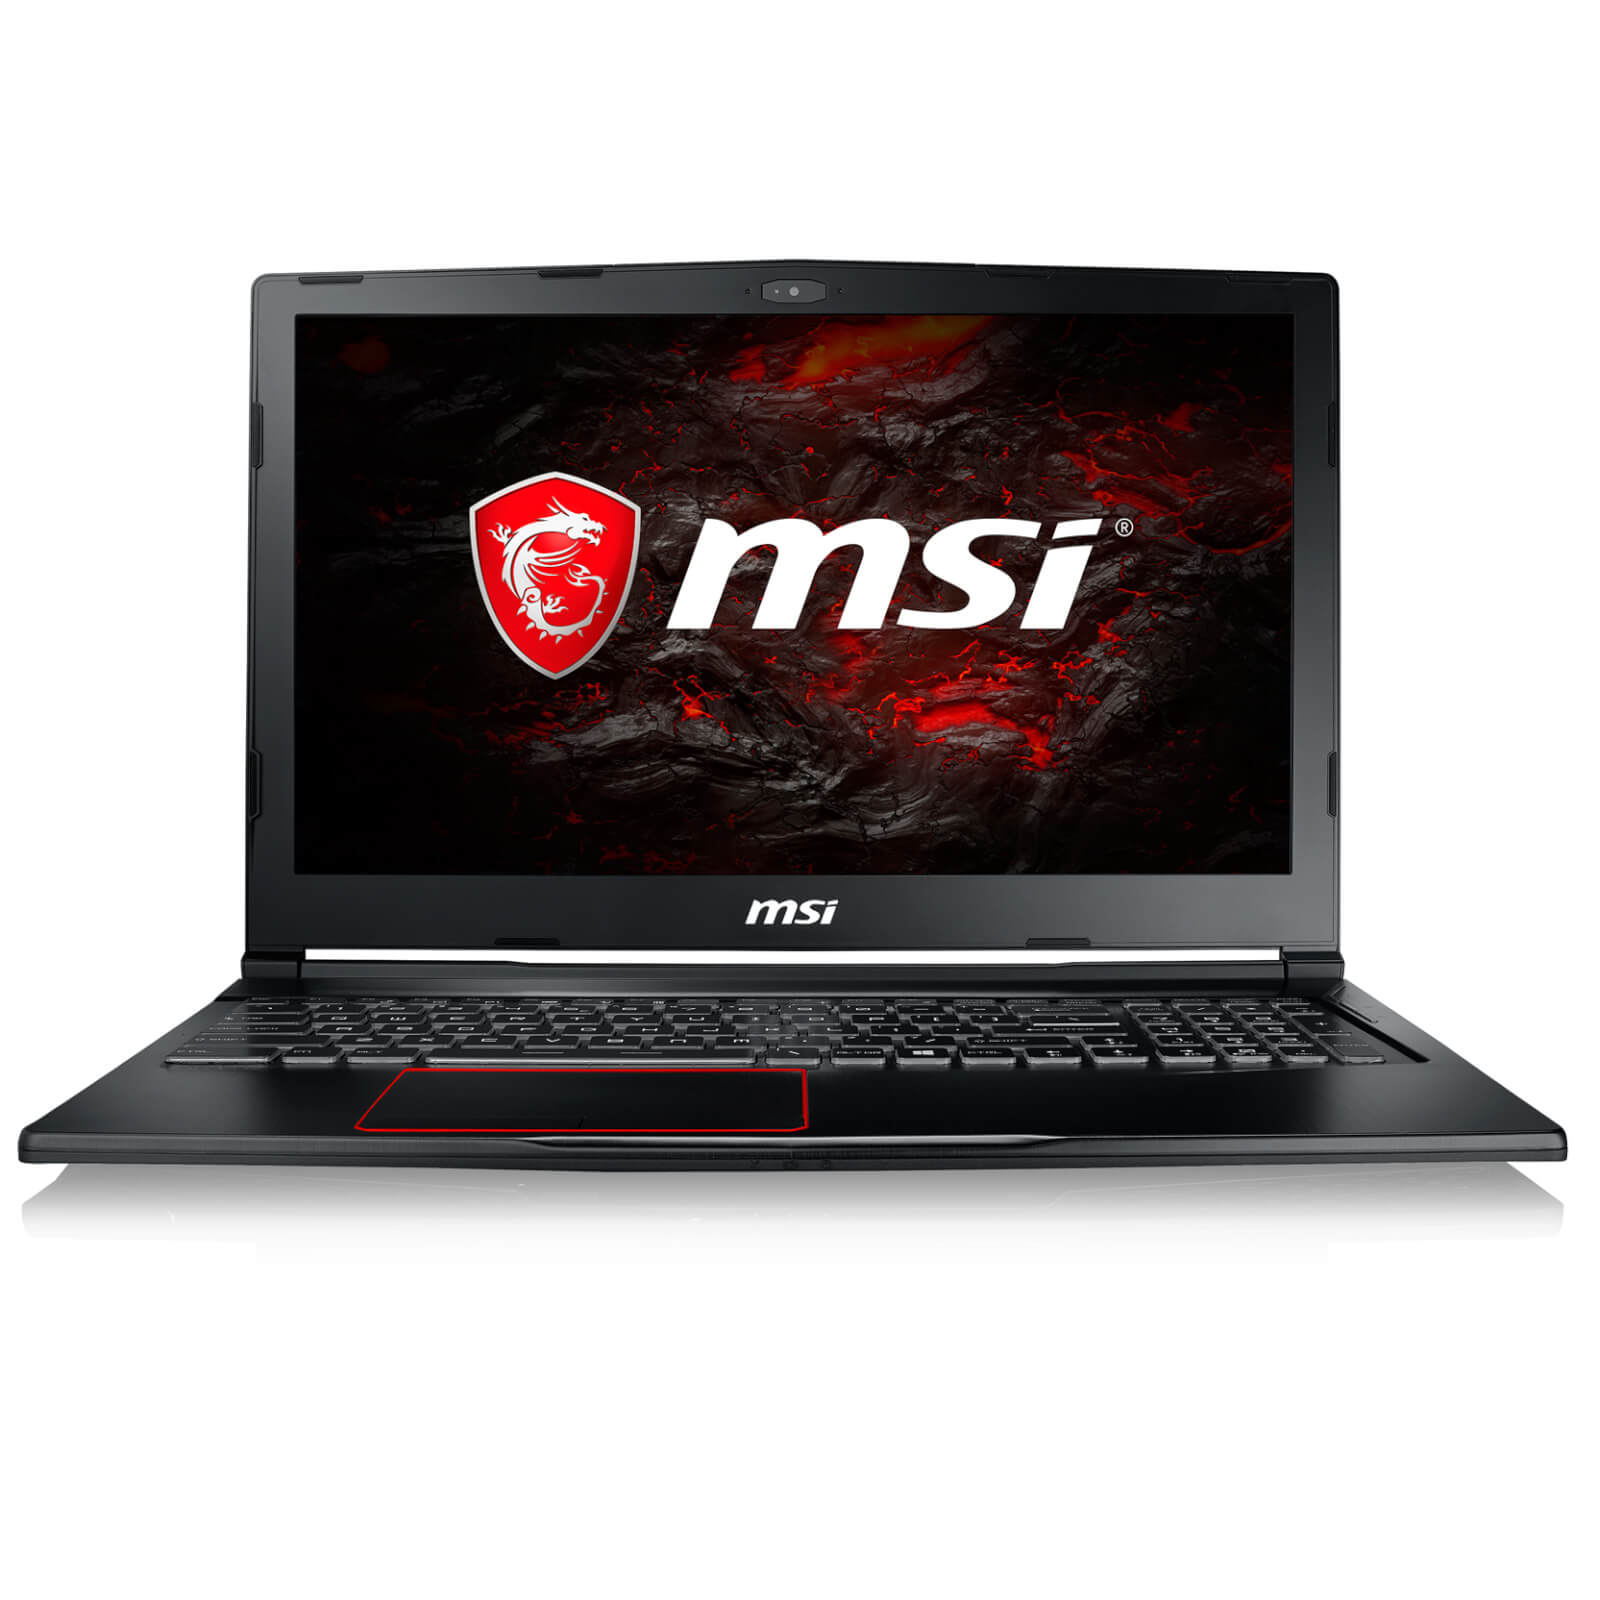 "MSI GE63VR 7RF-044UK Raider (GeForce GTX 1070, 8GB GDDR5) 15.6"""" Gaming Laptop"